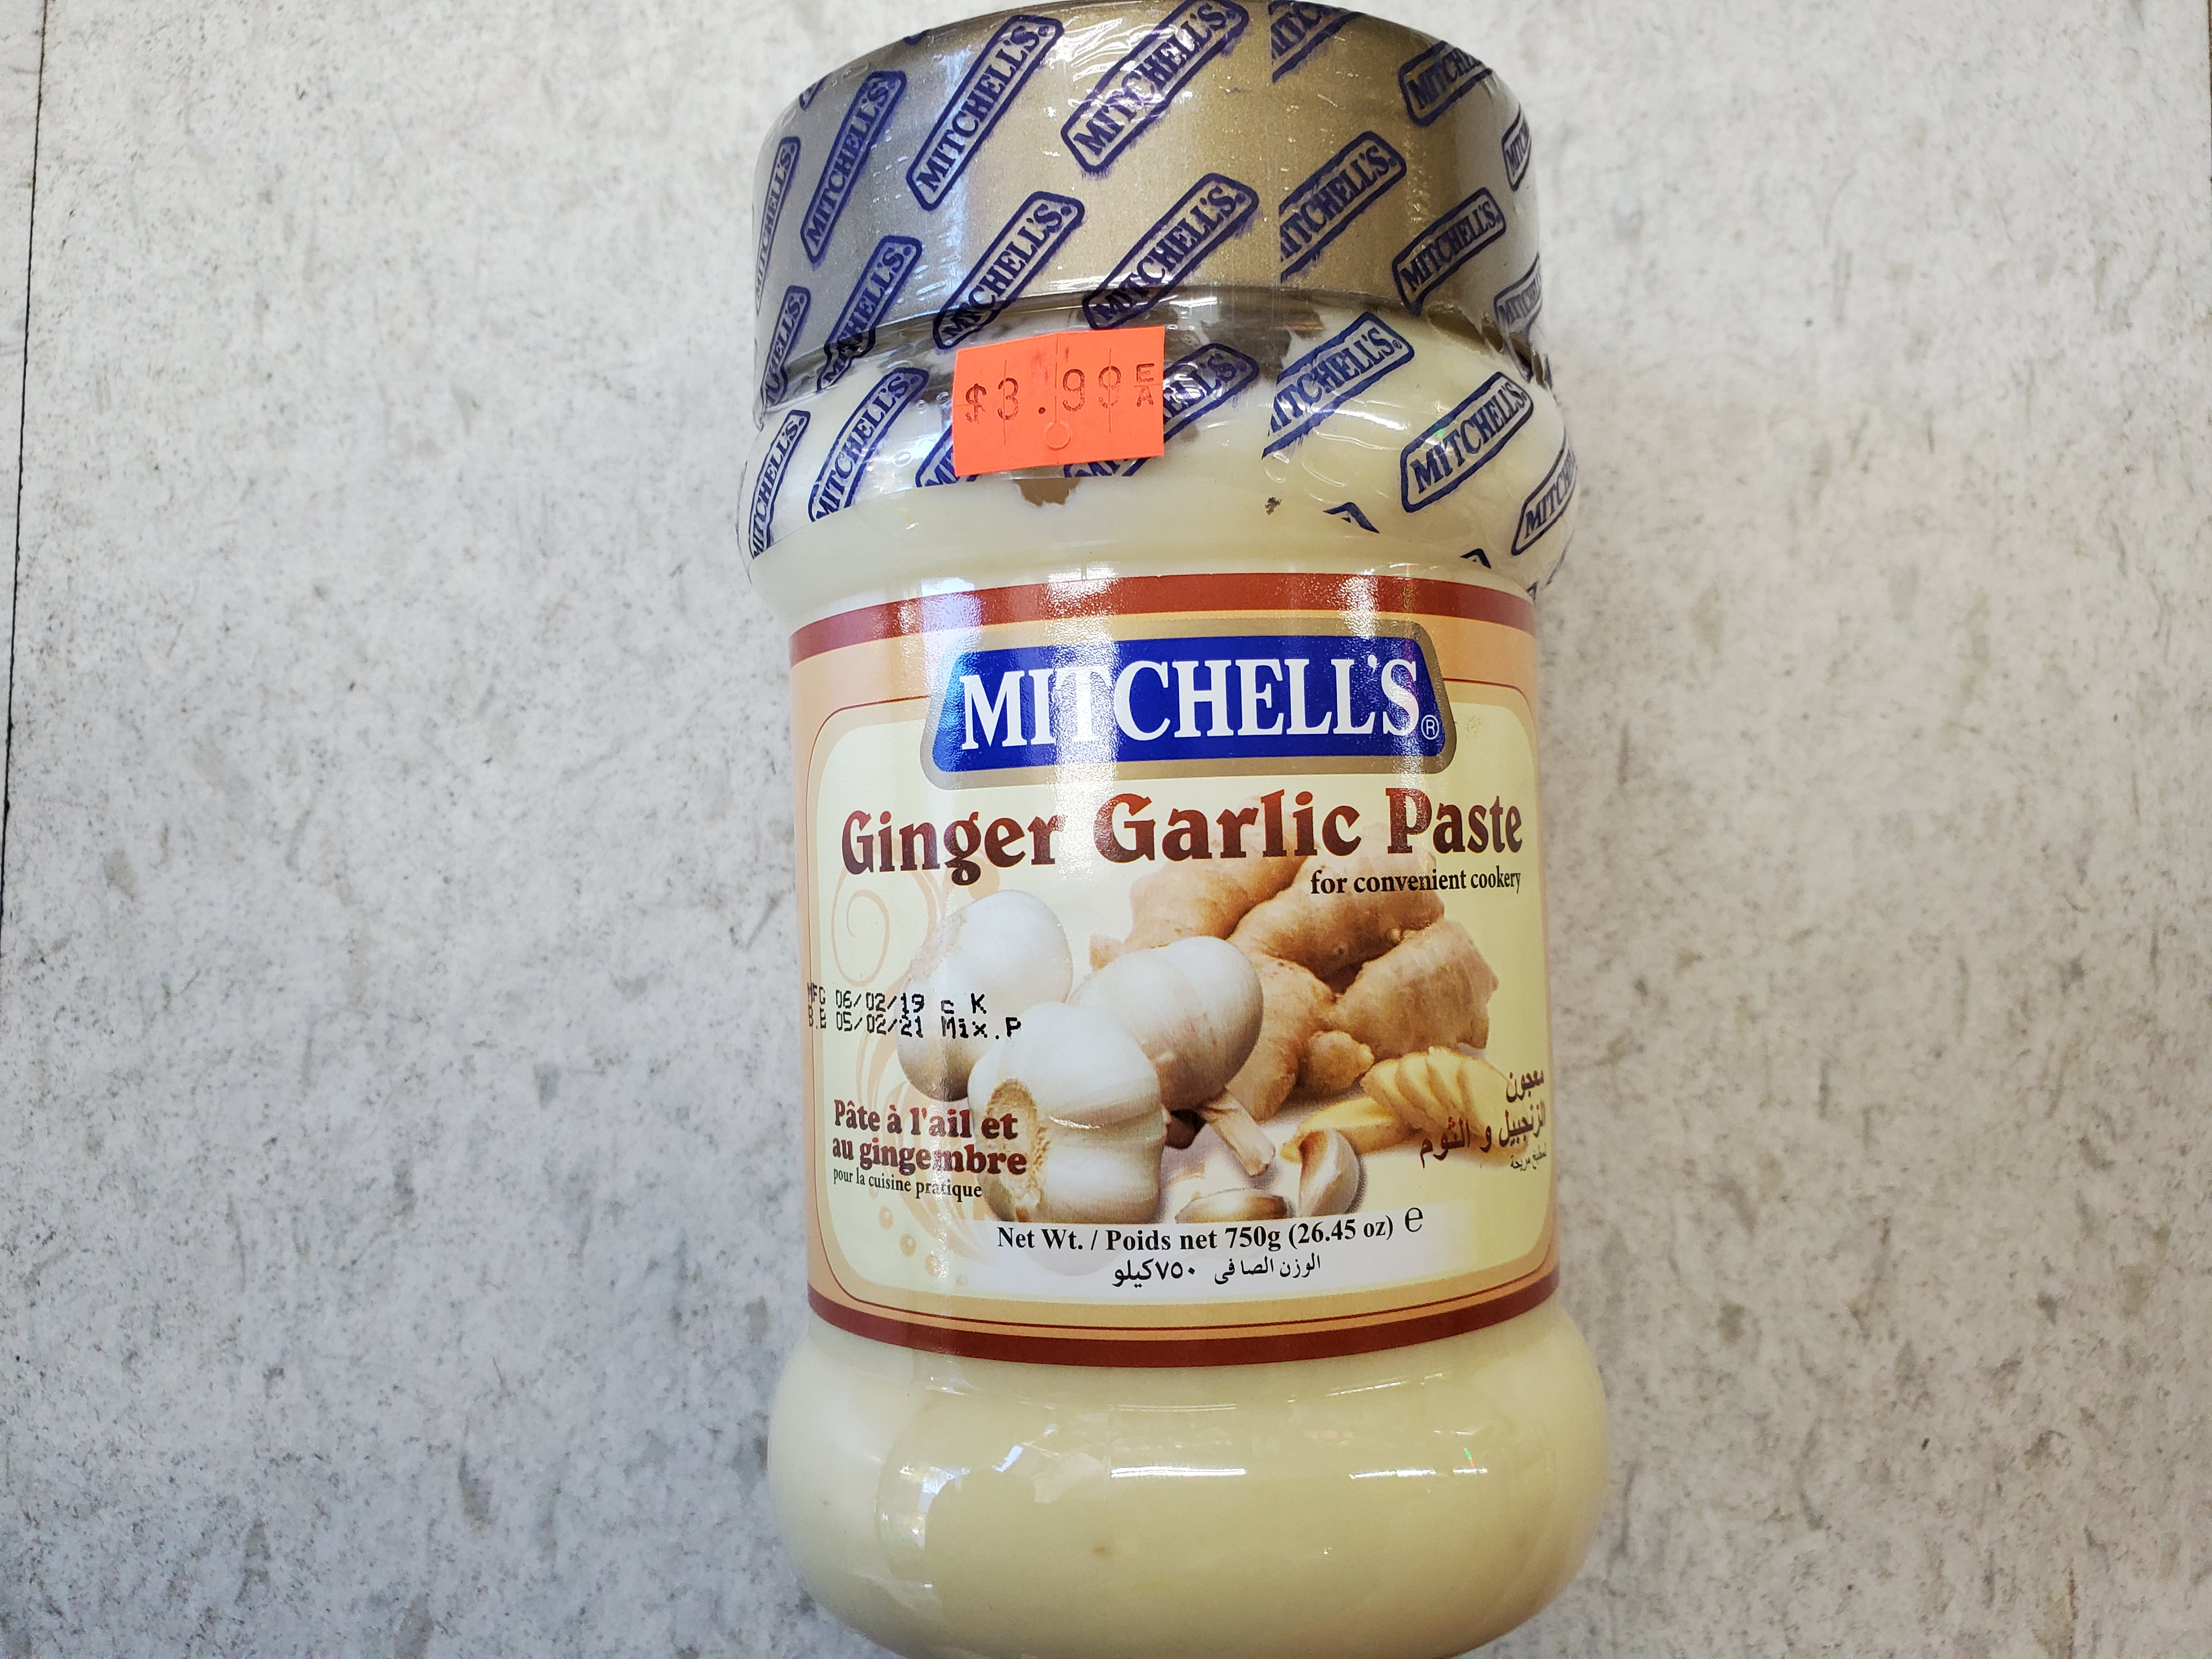 MITCHELL'S Ginger Garlic Paste